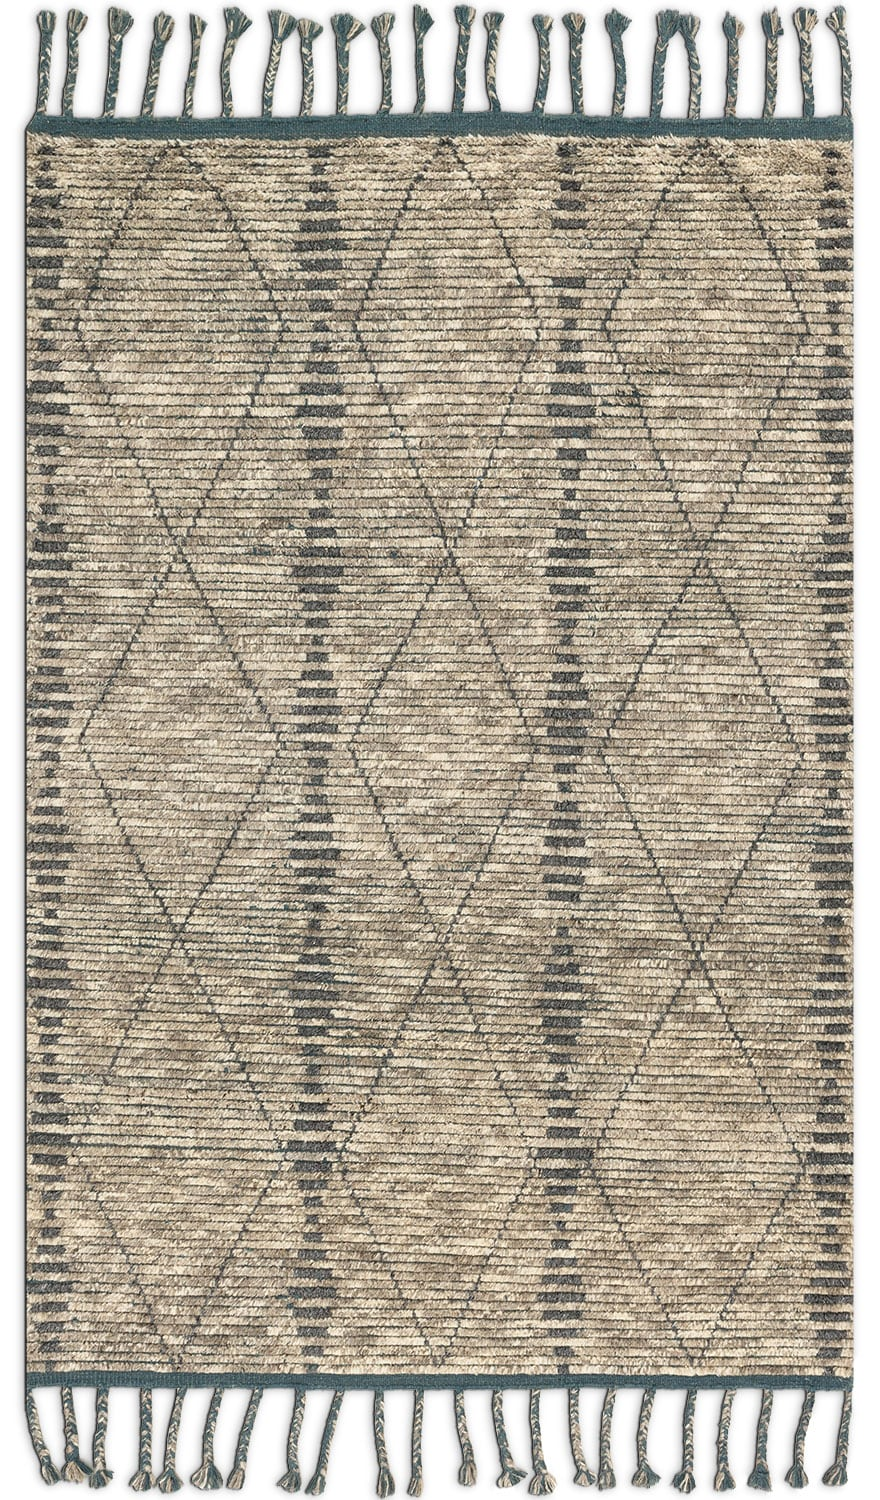 Rugs - Tulum 8' x 10' Rug - Stone and Blue